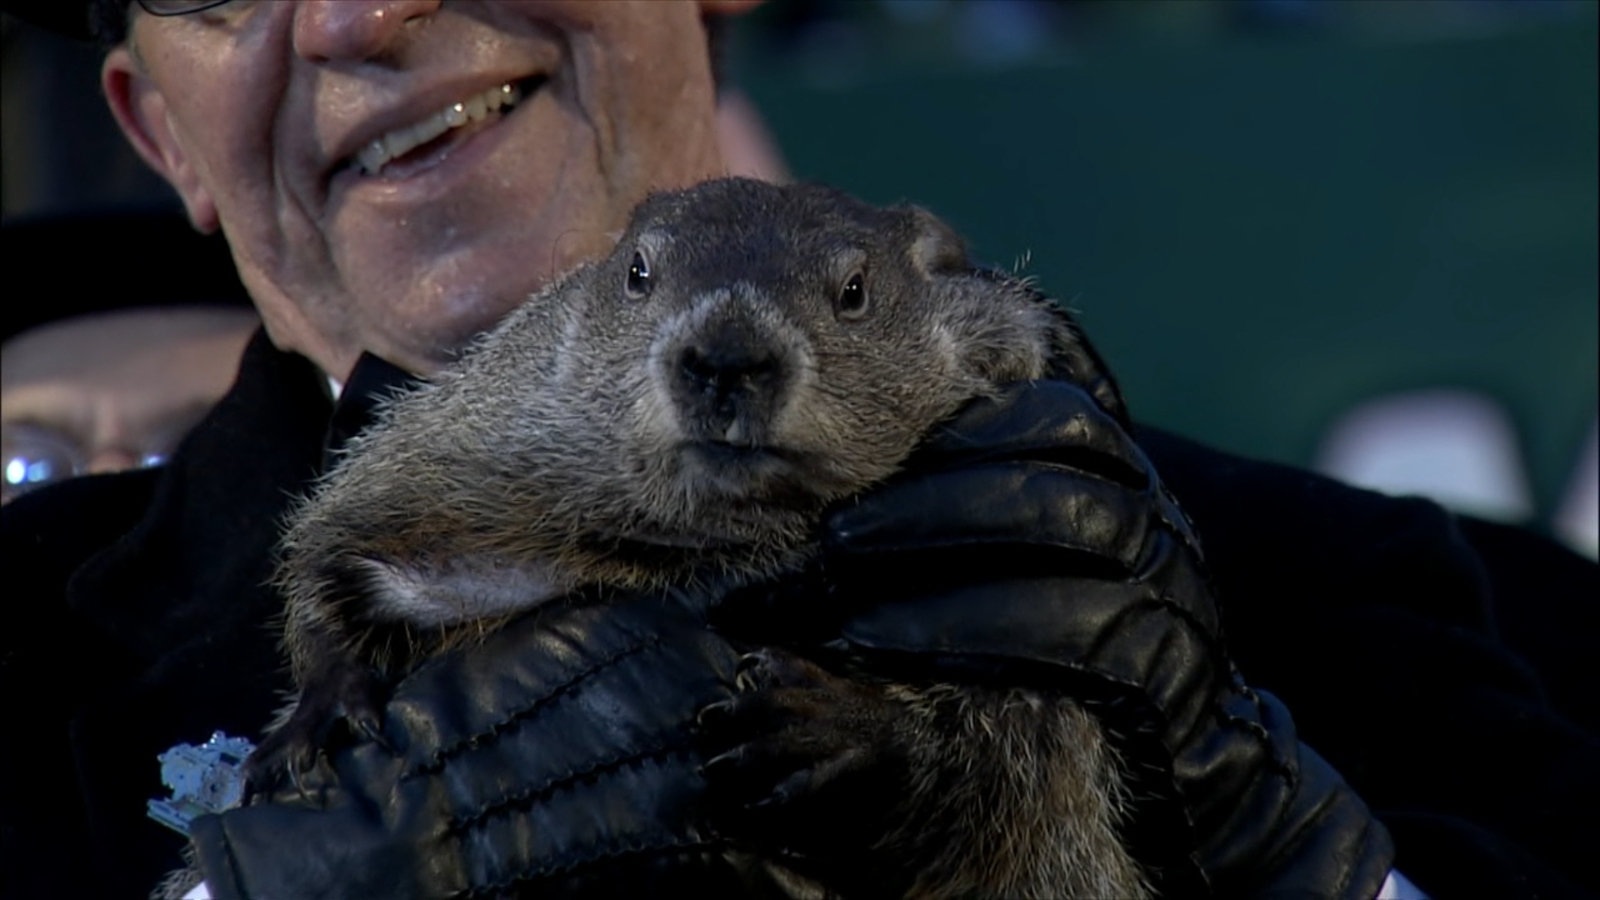 Uncategorized Groundhog Day Videos groundhog day video punxsutawney phil saw his shadow foretelling six more weeks of winter